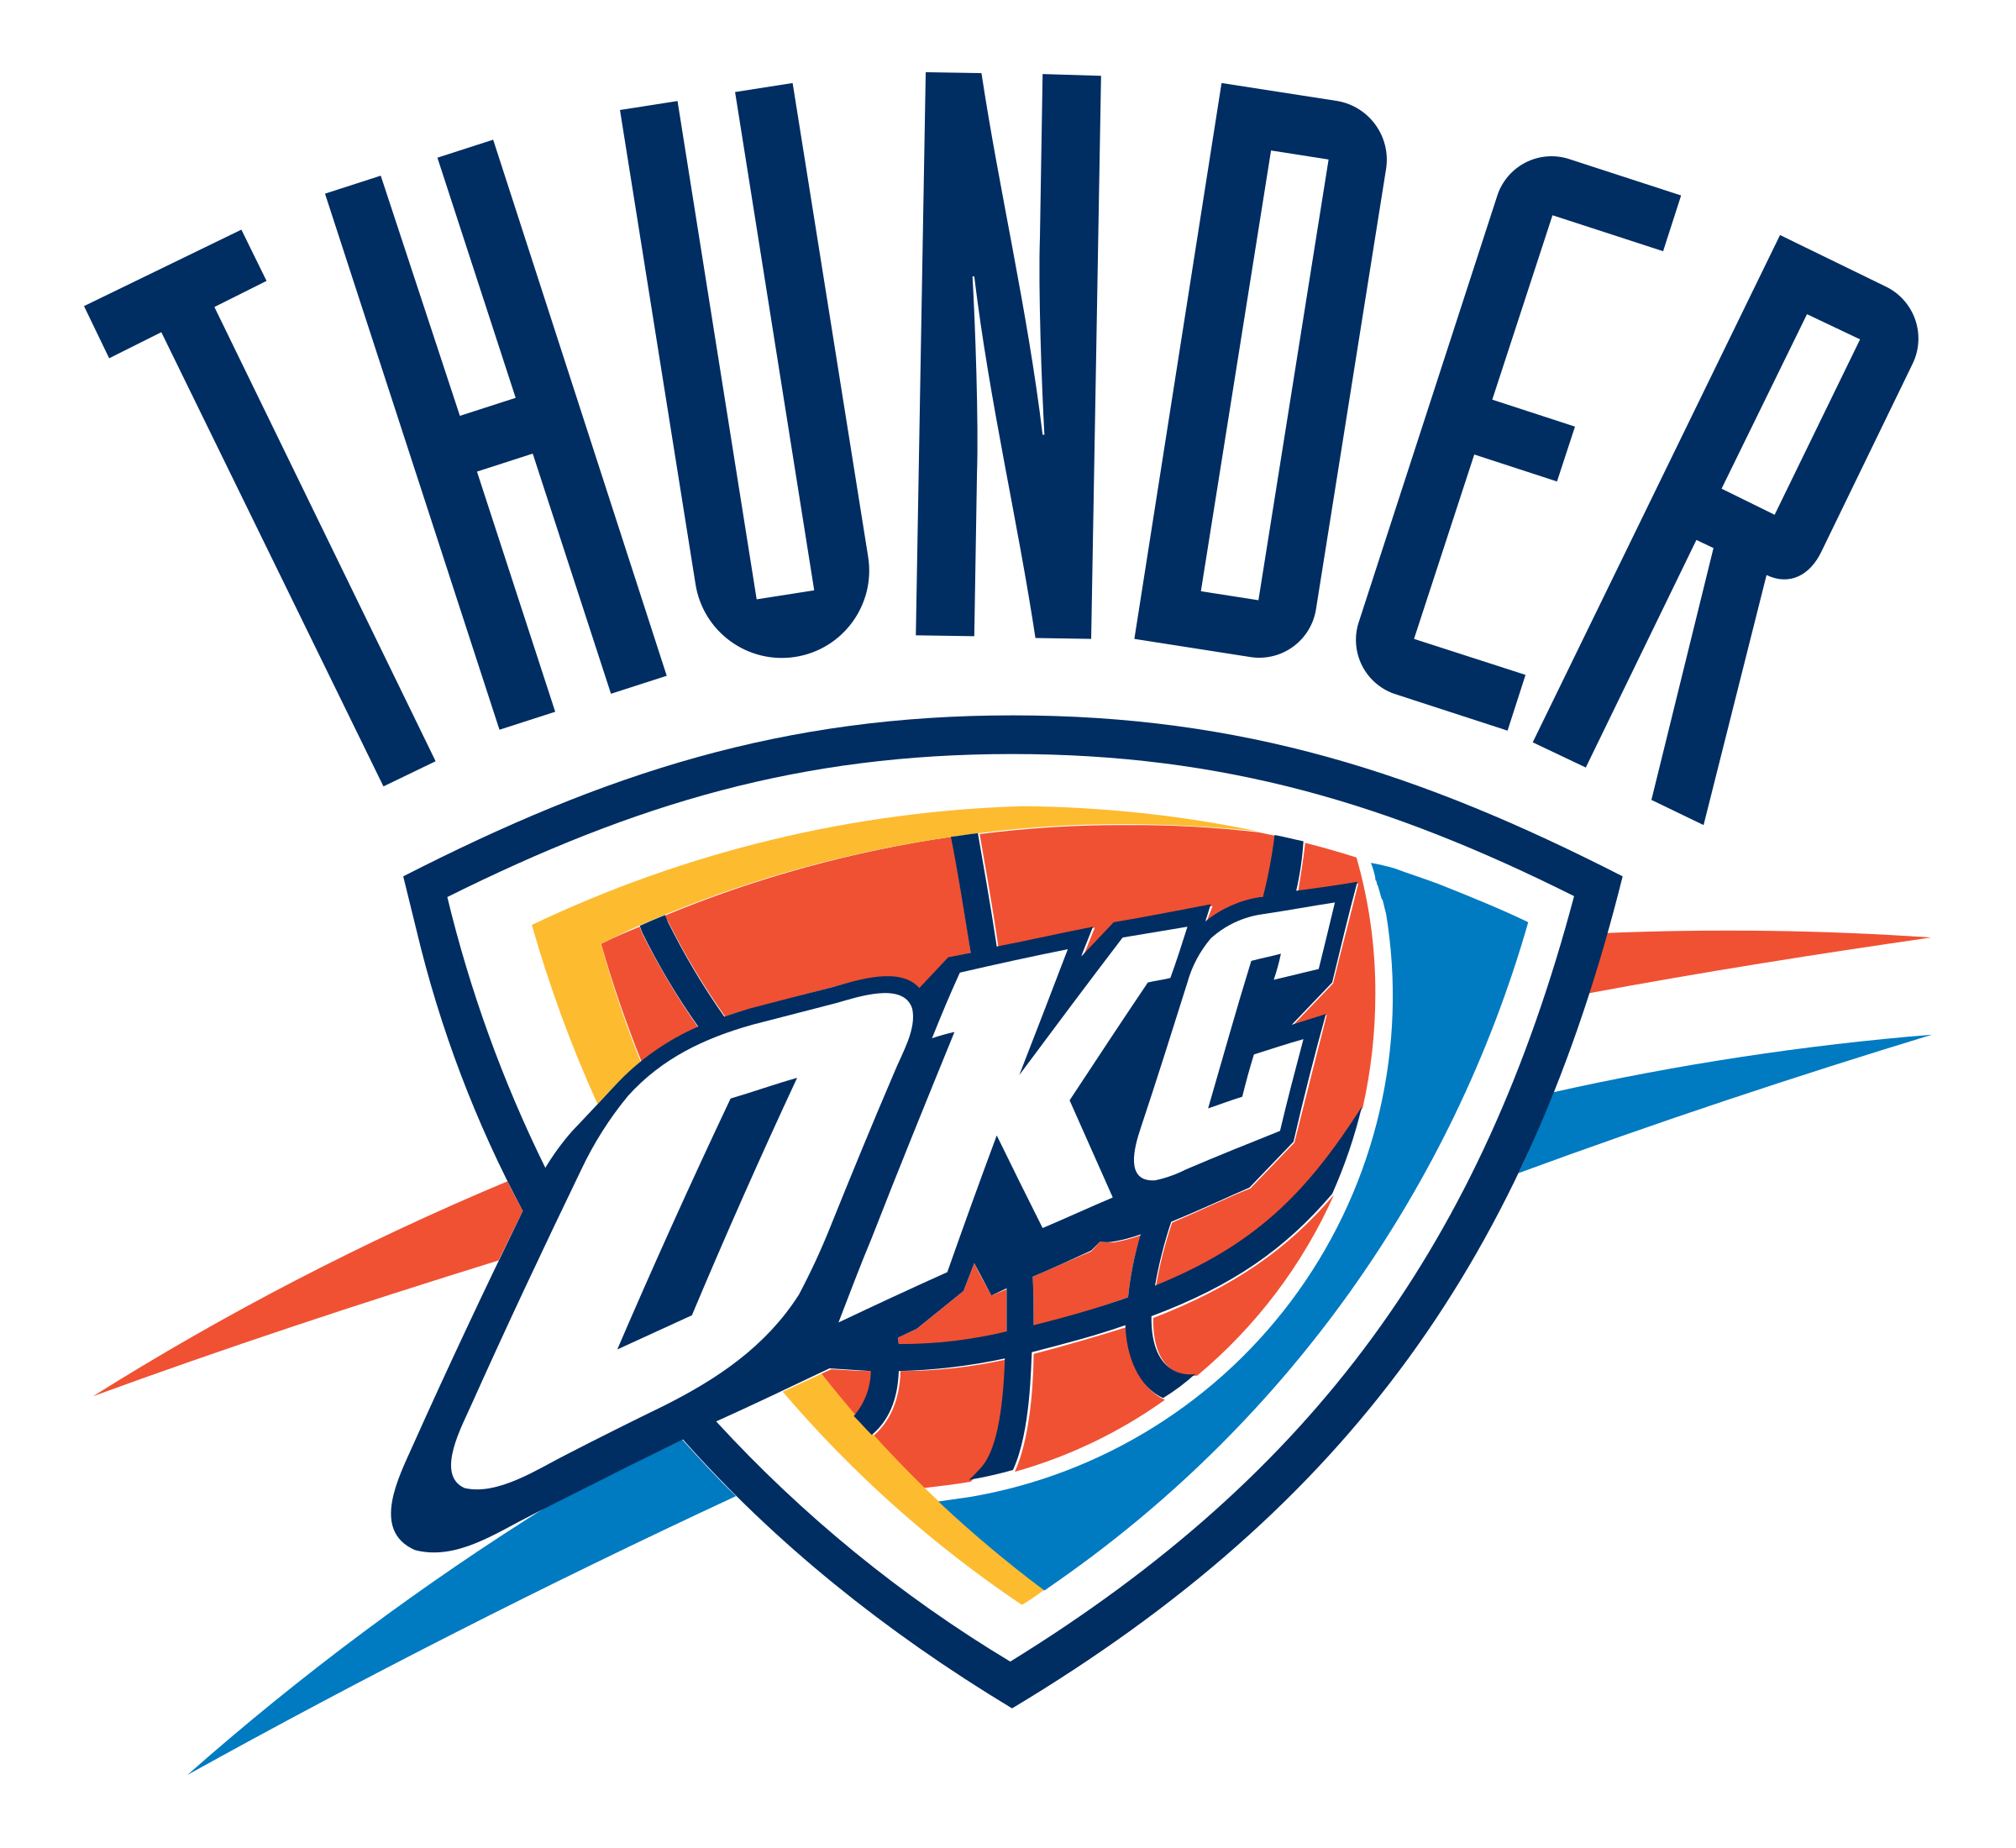 Oklahoma city thunder logo png. Transparent svg vector freebie